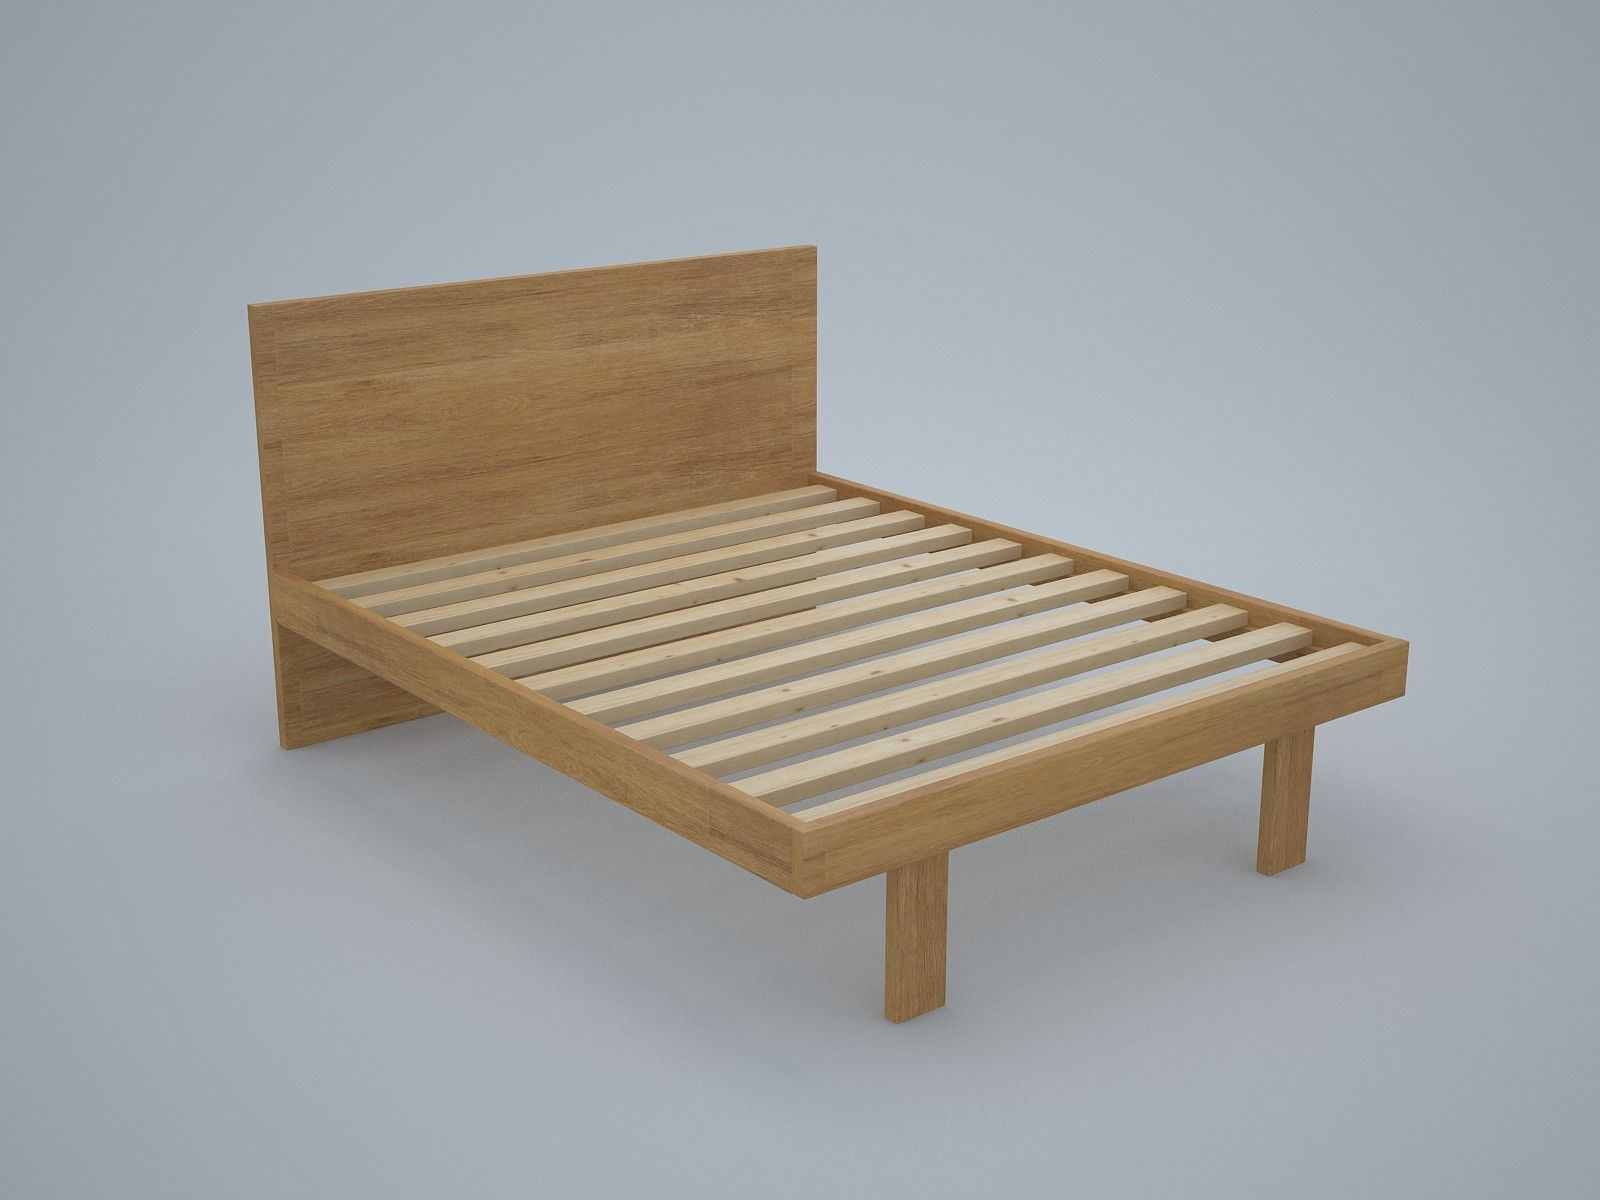 Elswick Custom Timber Bed Frame with Legs | Timber bed frames, Bed ...